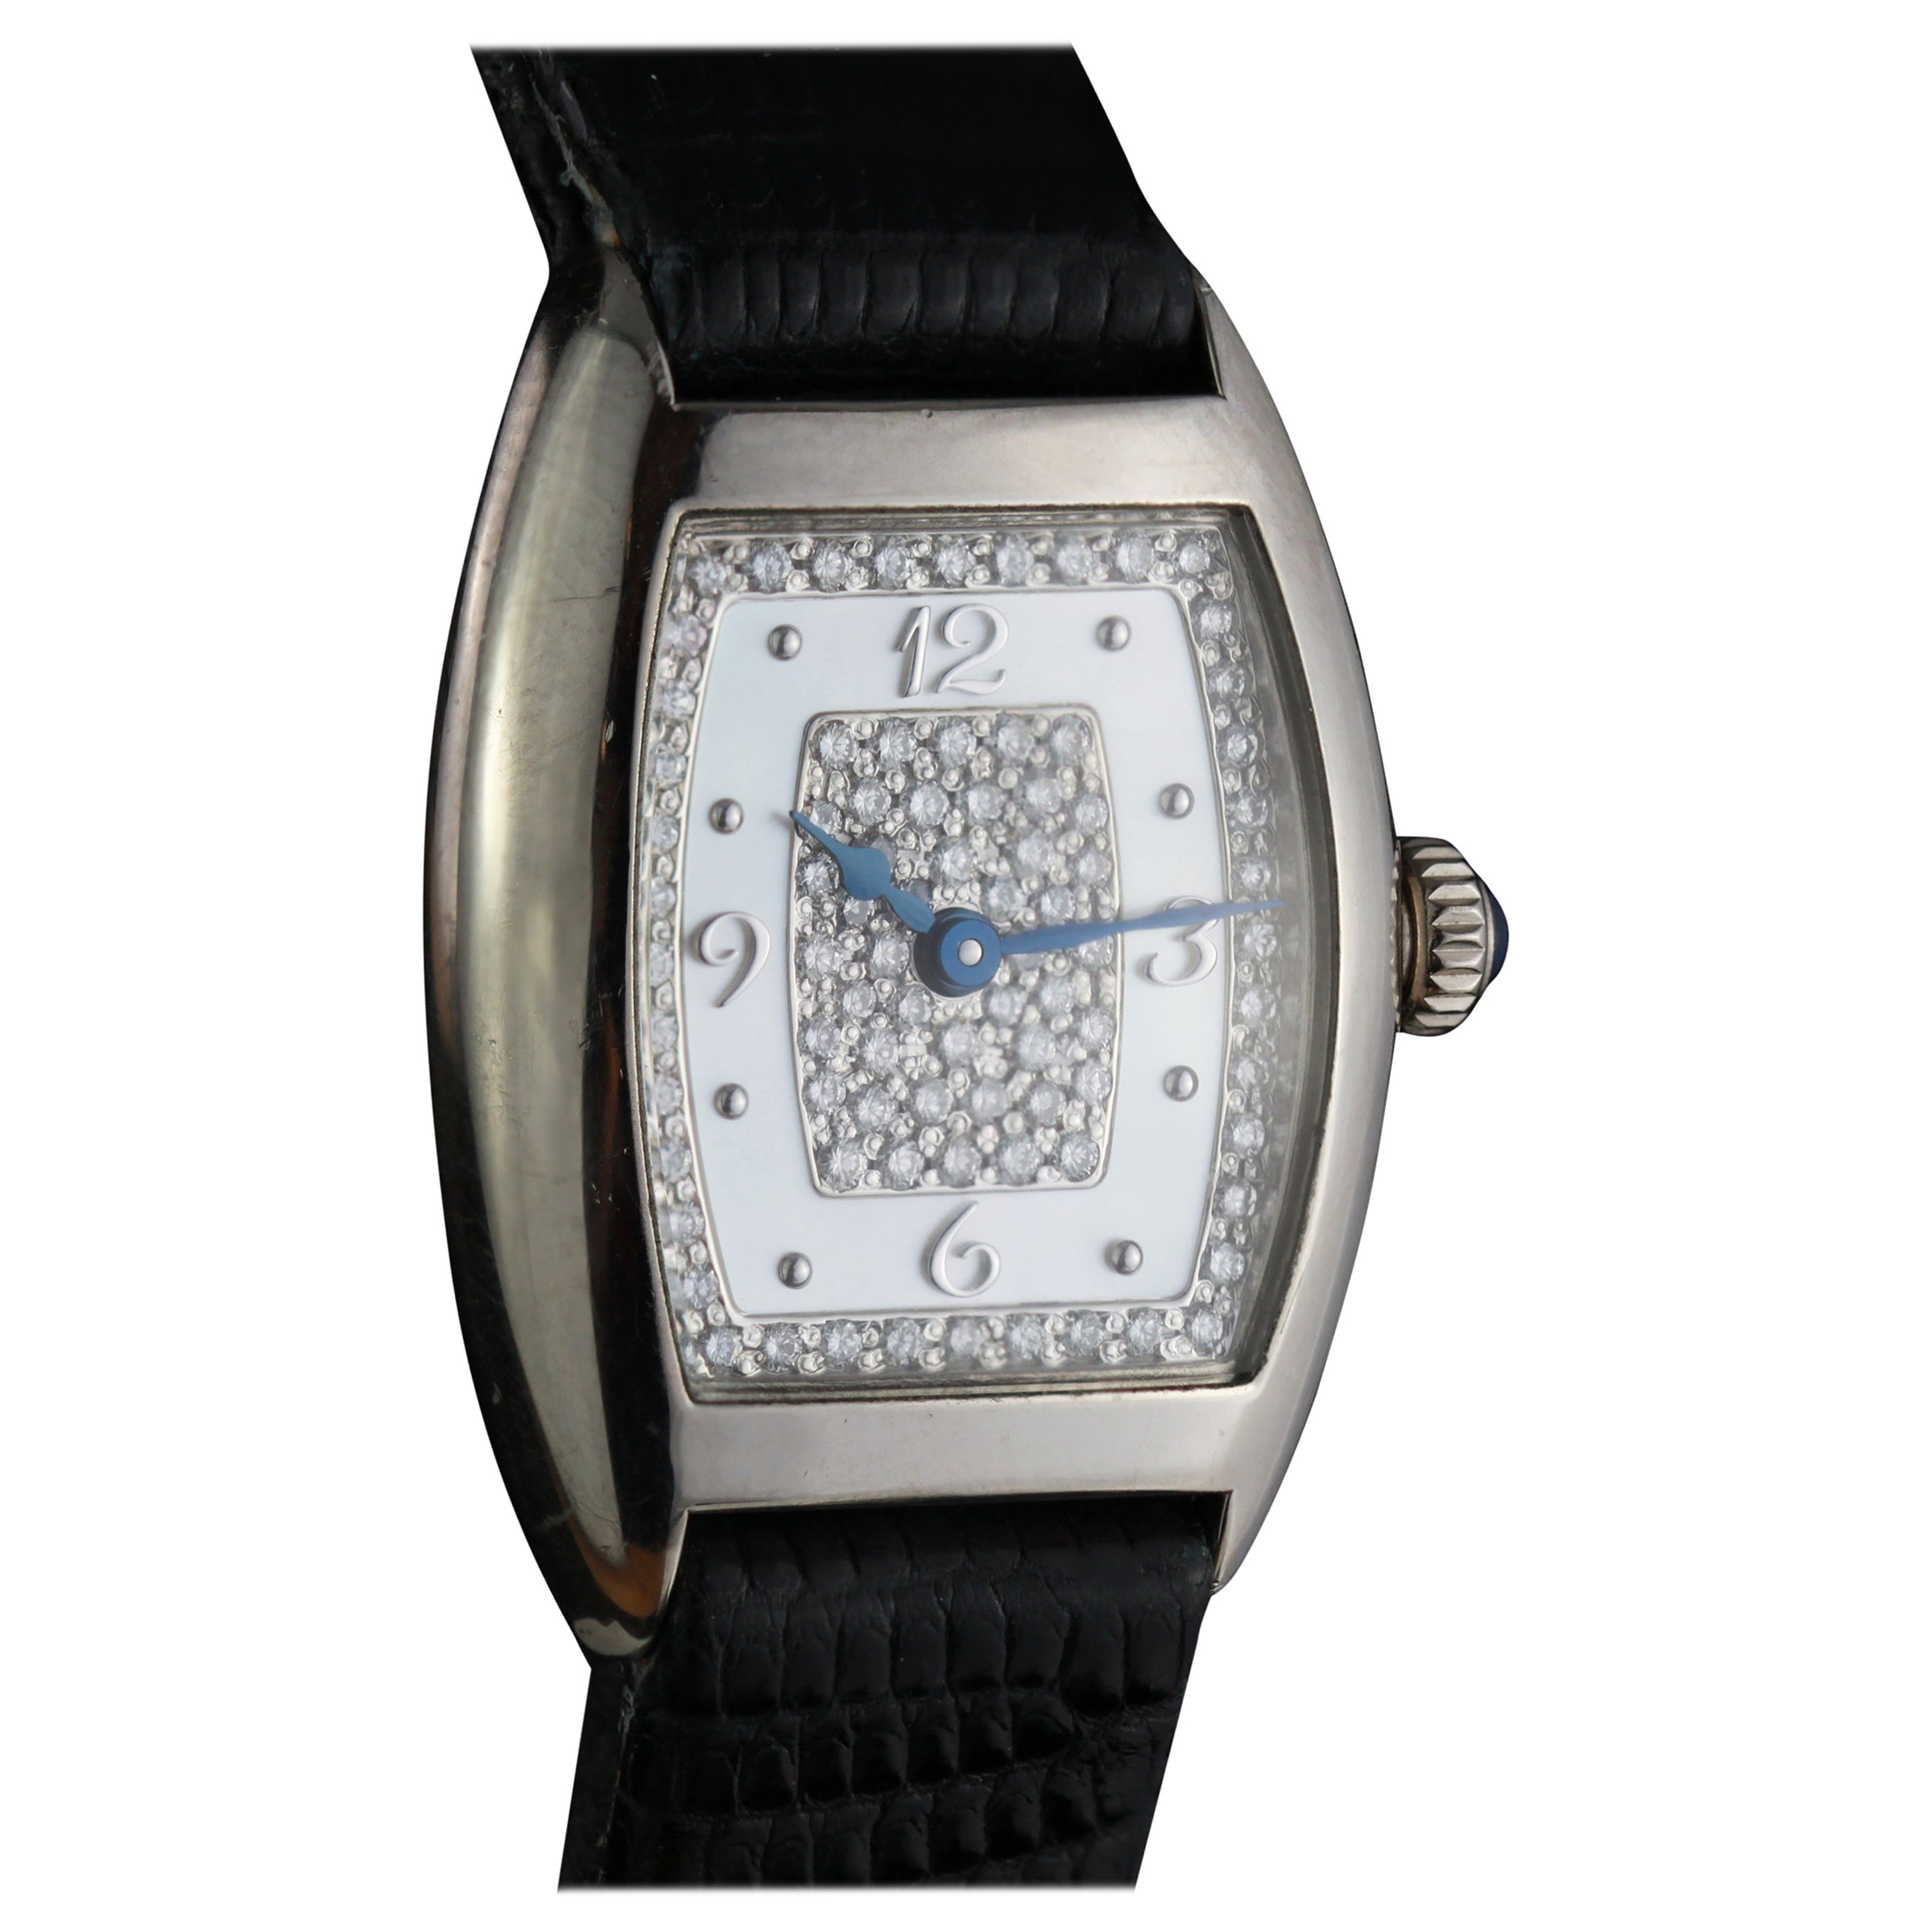 Franck Muller Ladies White Gold and Diamond Watch